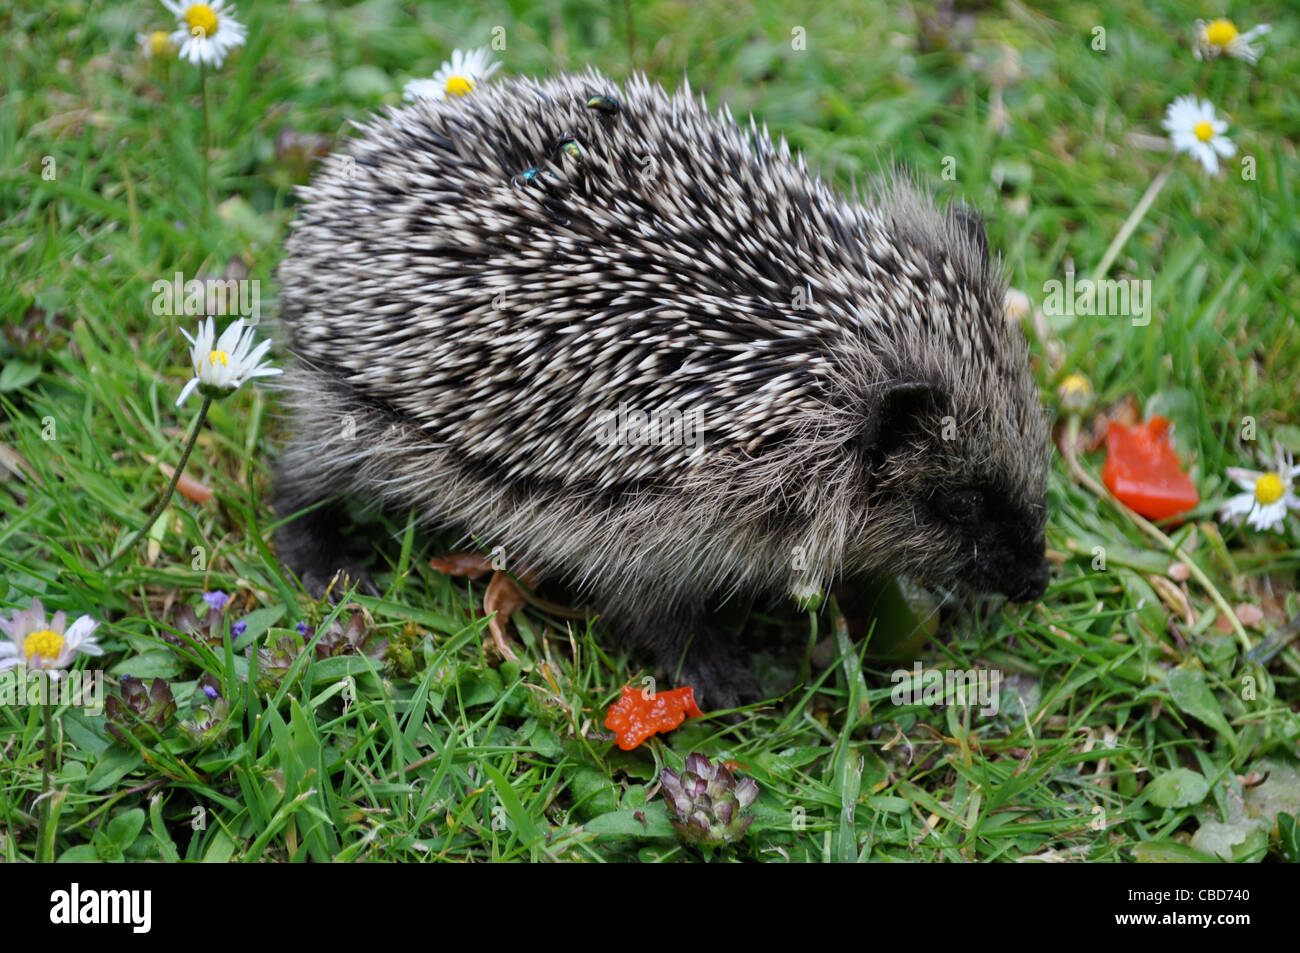 Baby hedgehog eating salad remnants among daisies in summer, England. RSPCA rescue sick and underweight hedgehogs. - Stock Image